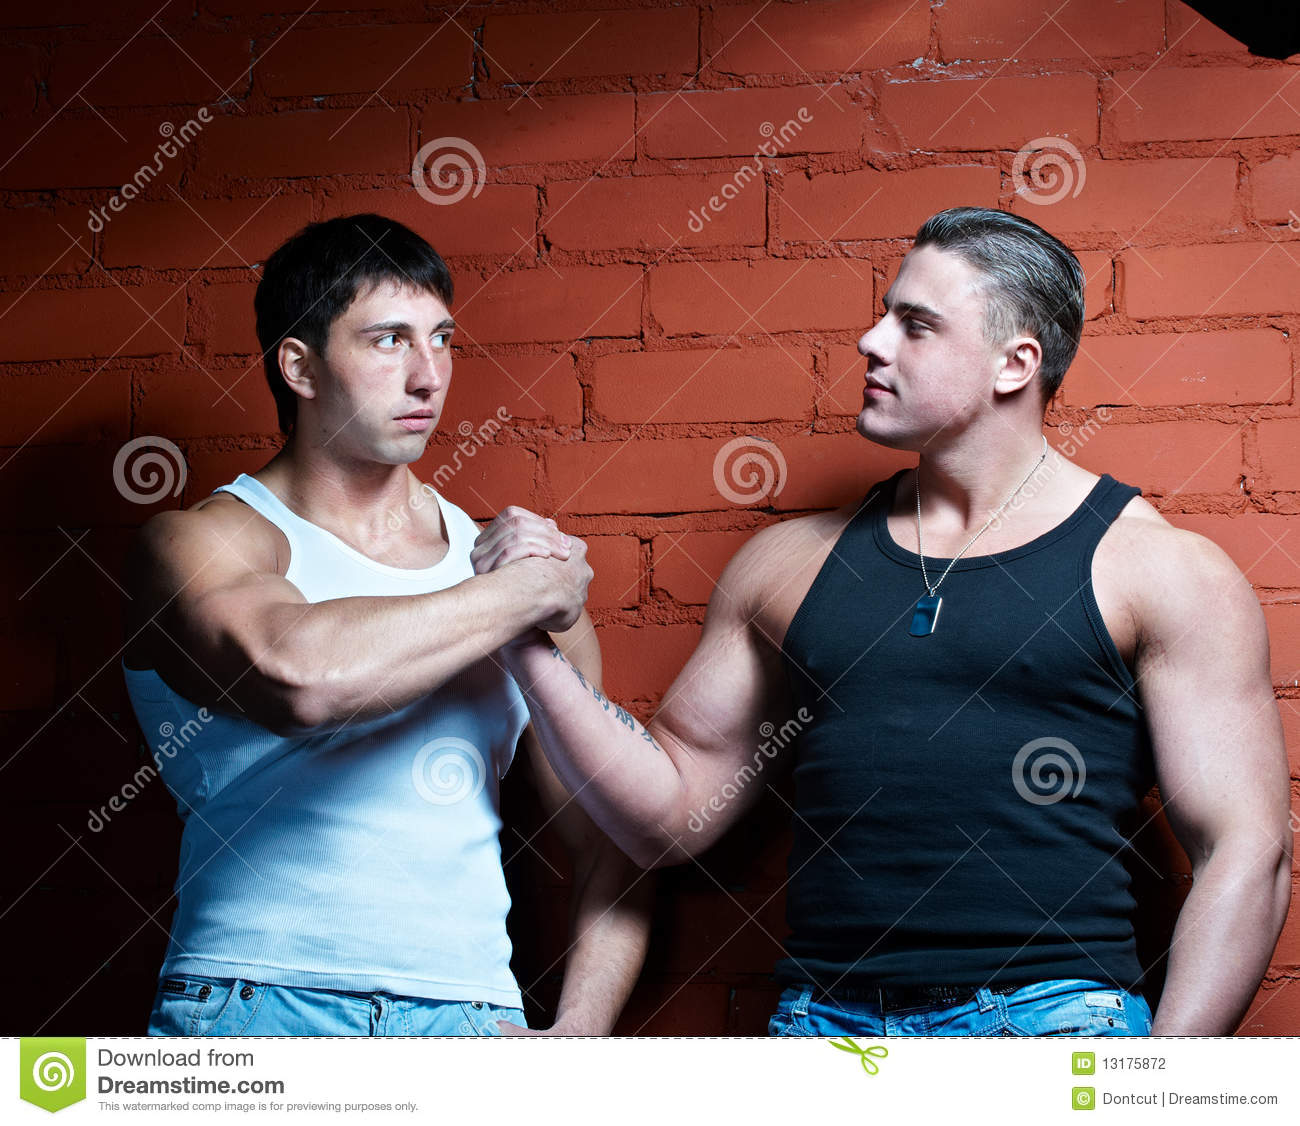 Two muscular guys